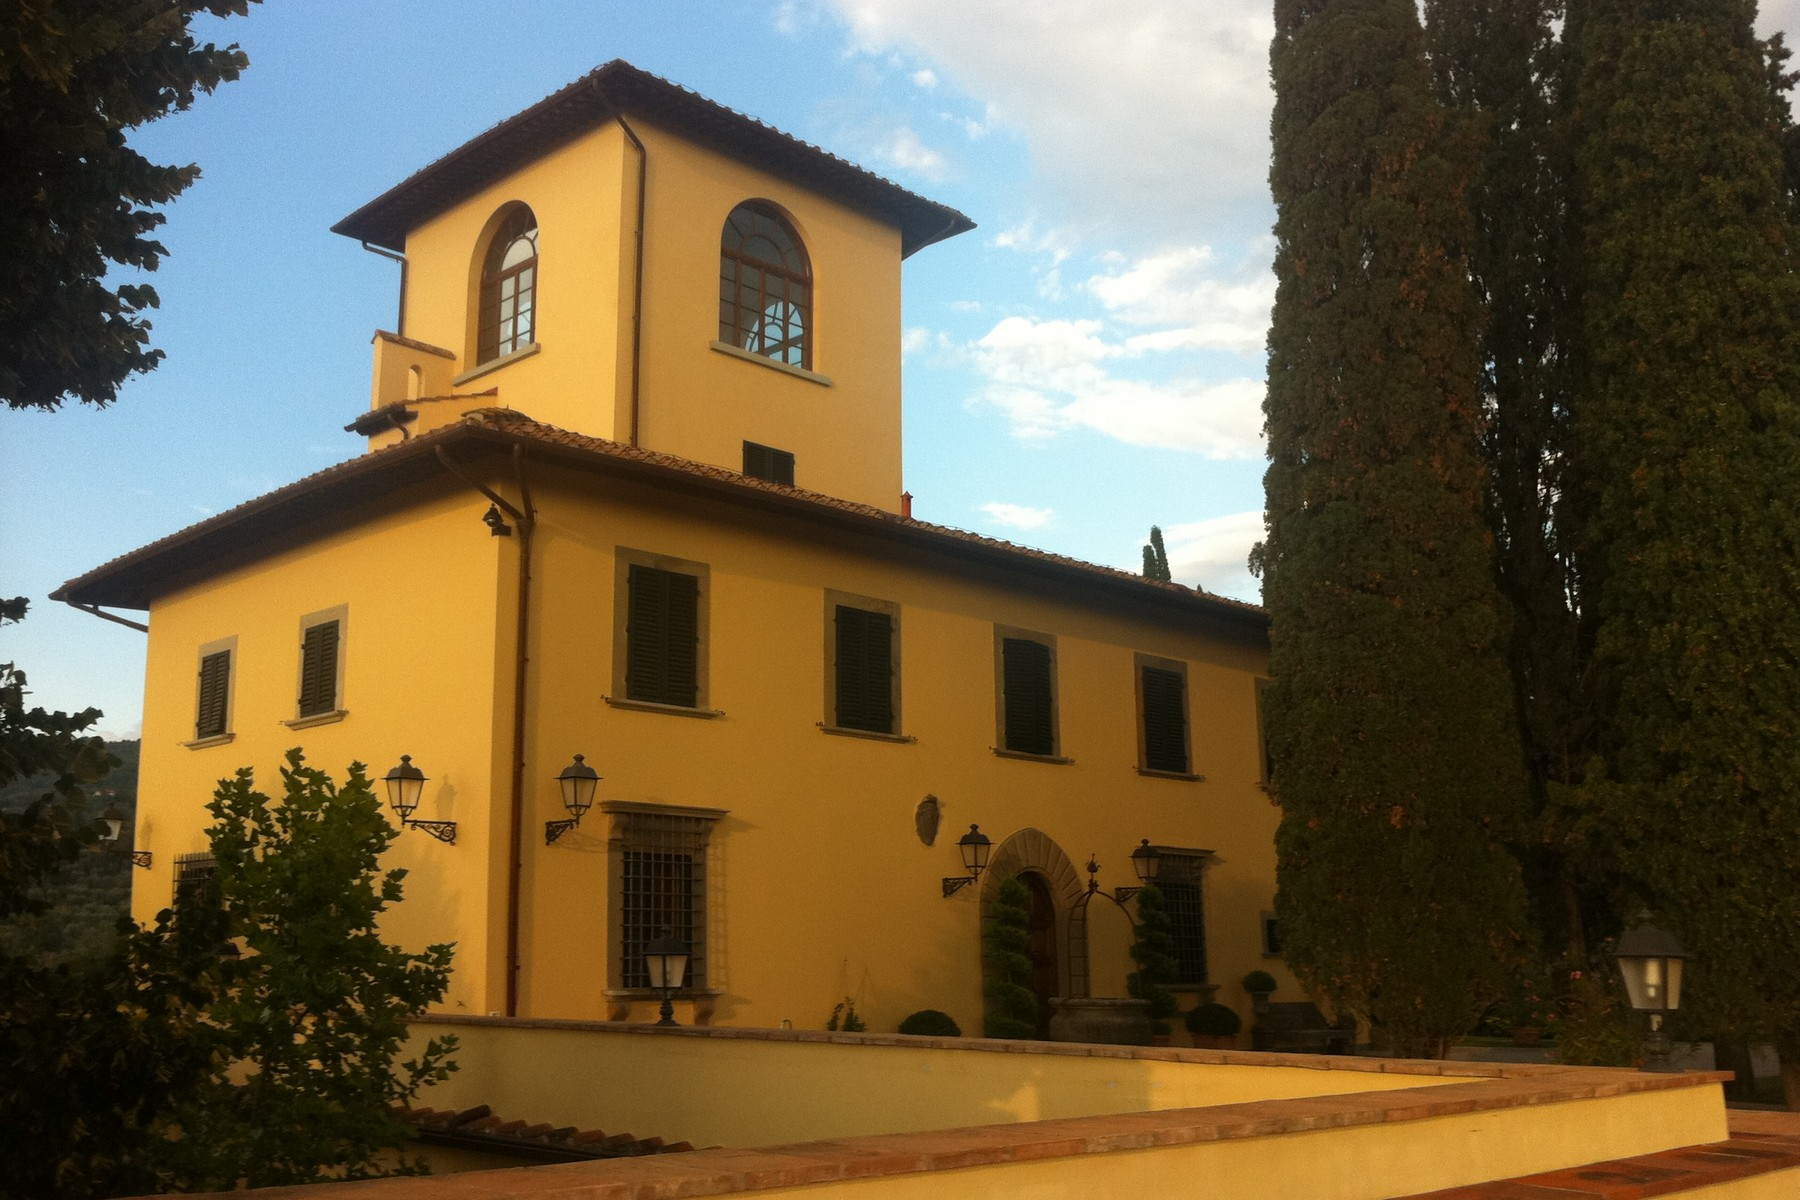 Single Family Home for Sale at An exclusive, fully restored 14th century villa with every commodity in Florence Via Belvedere Bagno A Ripoli, 50012 Italy